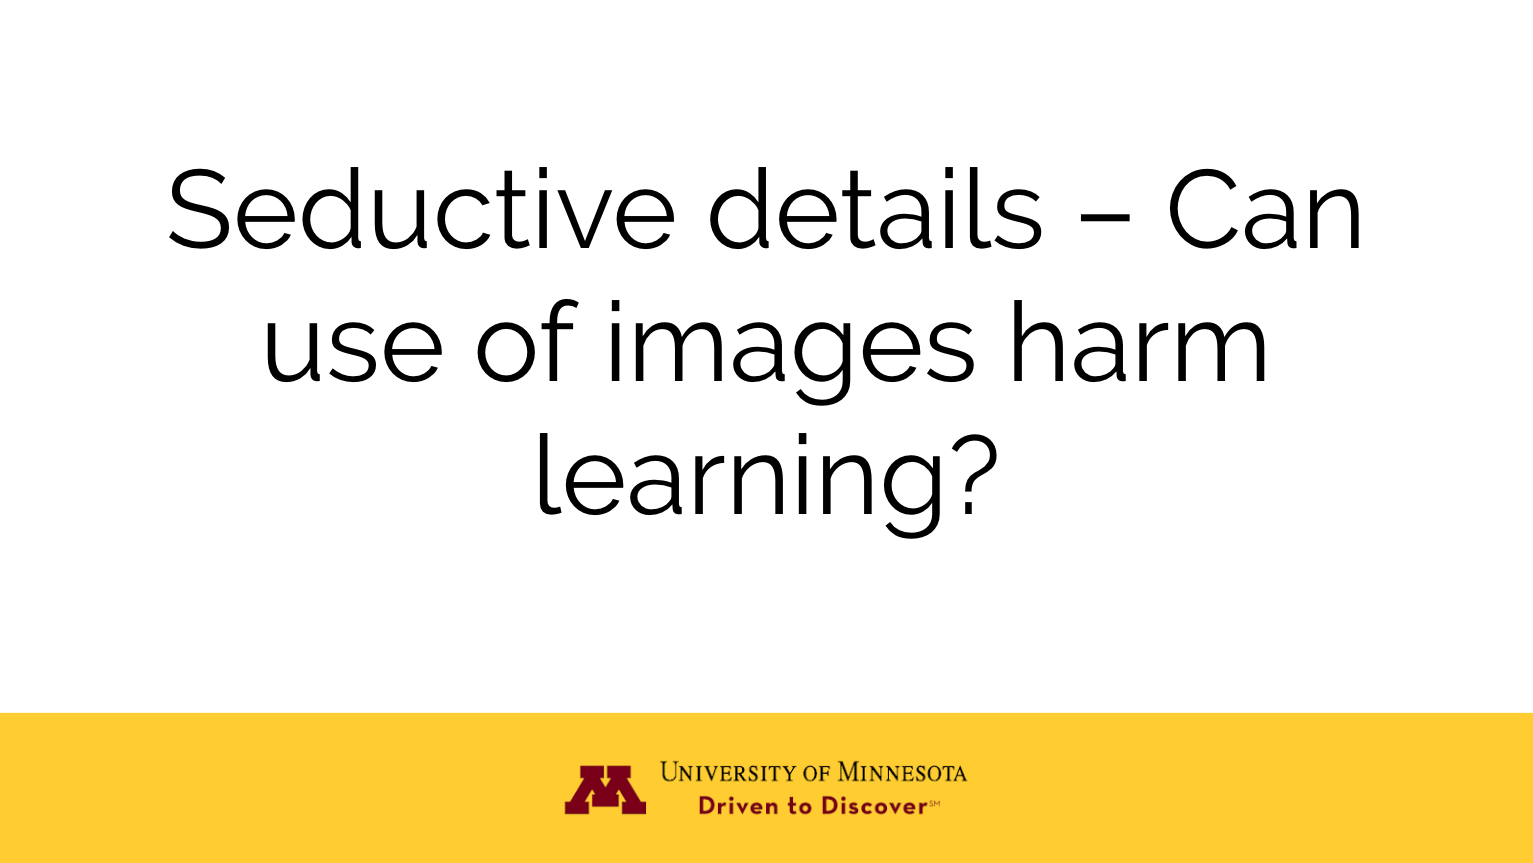 Seductive Details - Can use of images harm learning?